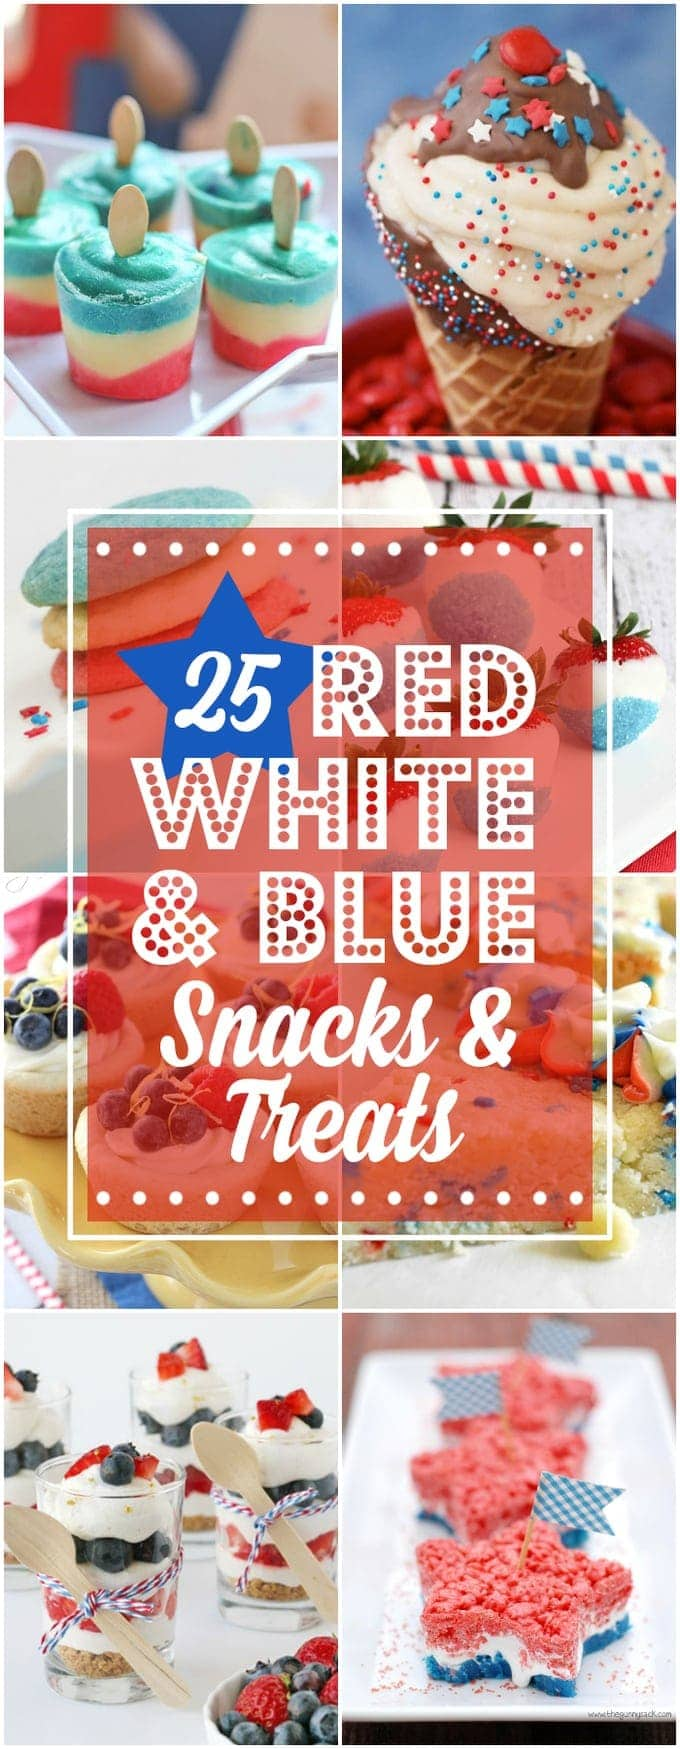 25 Patriotic Snacks and Treats - Yummy snacks and desserts in red, white and blue. Fun for Memorial Day or 4th of July parties!